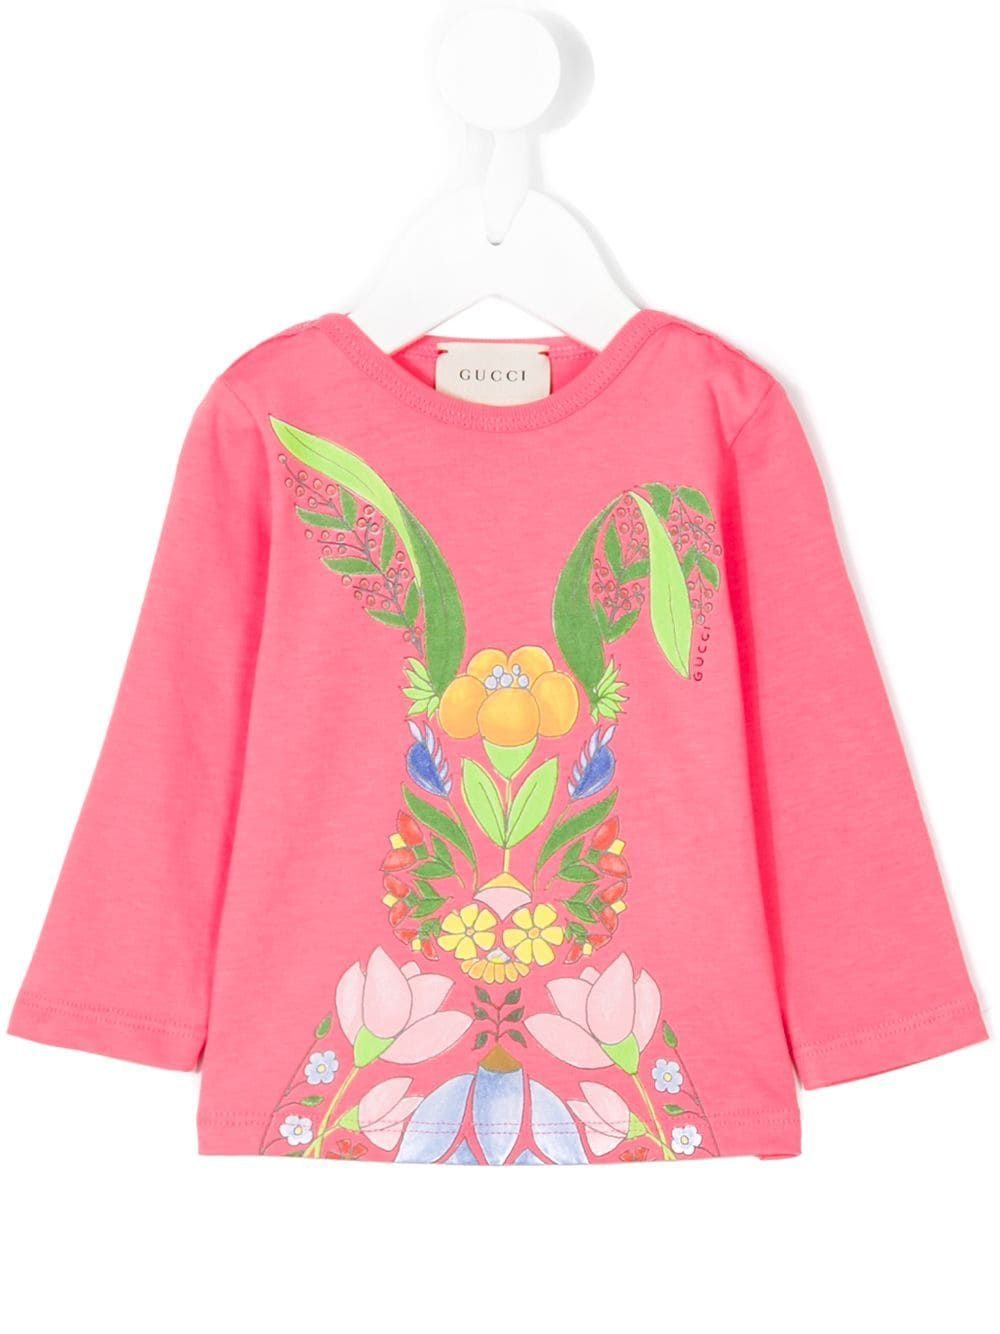 c6bf67246 Gucci Kids printed T-shirt - Pink in 2019 | Products | Gucci kids ...